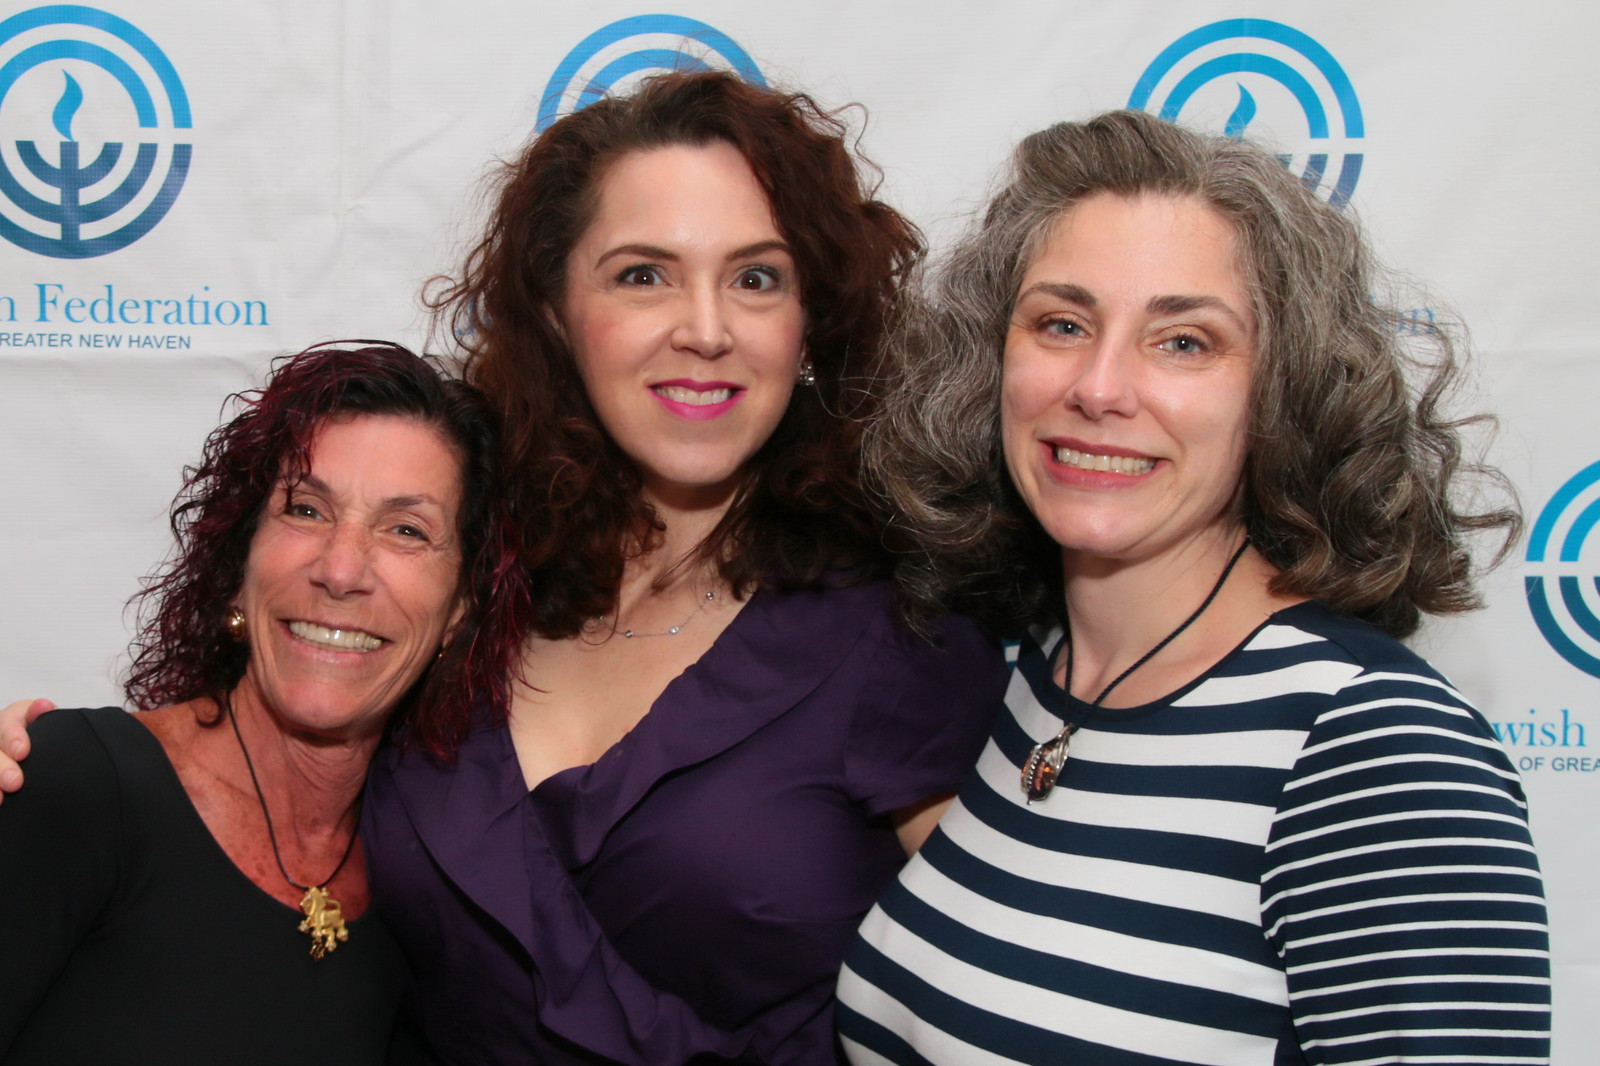 new haven jewish girl personals Young jewish professionals, connecticut- yjp: see photos here new and hip jewish professionals, couples and singles group for ages 20's-30's in fairfield county and connecticut.